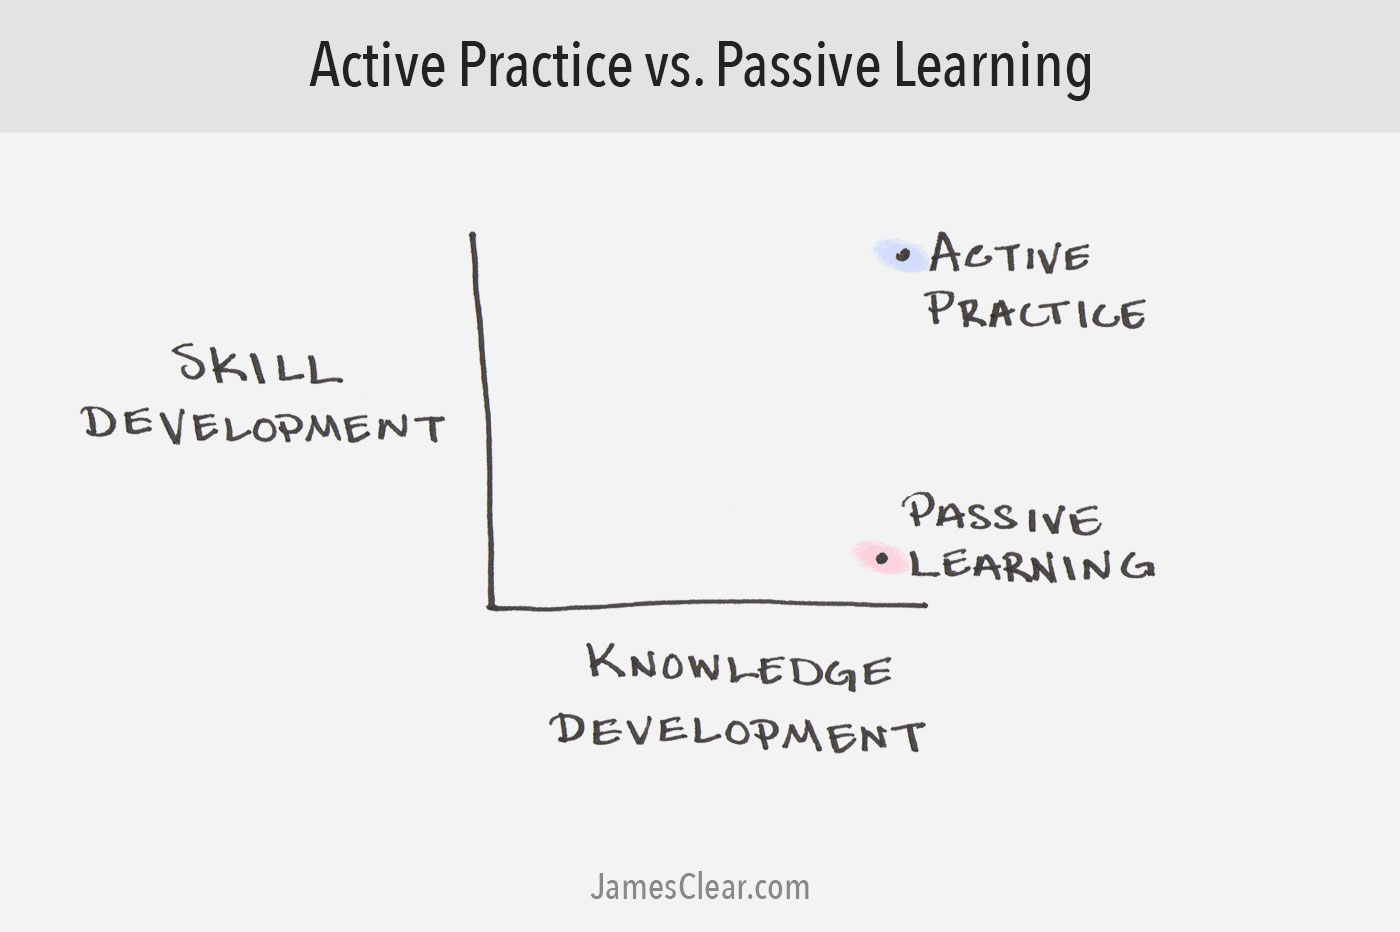 Active Practice vs. Passive Learning